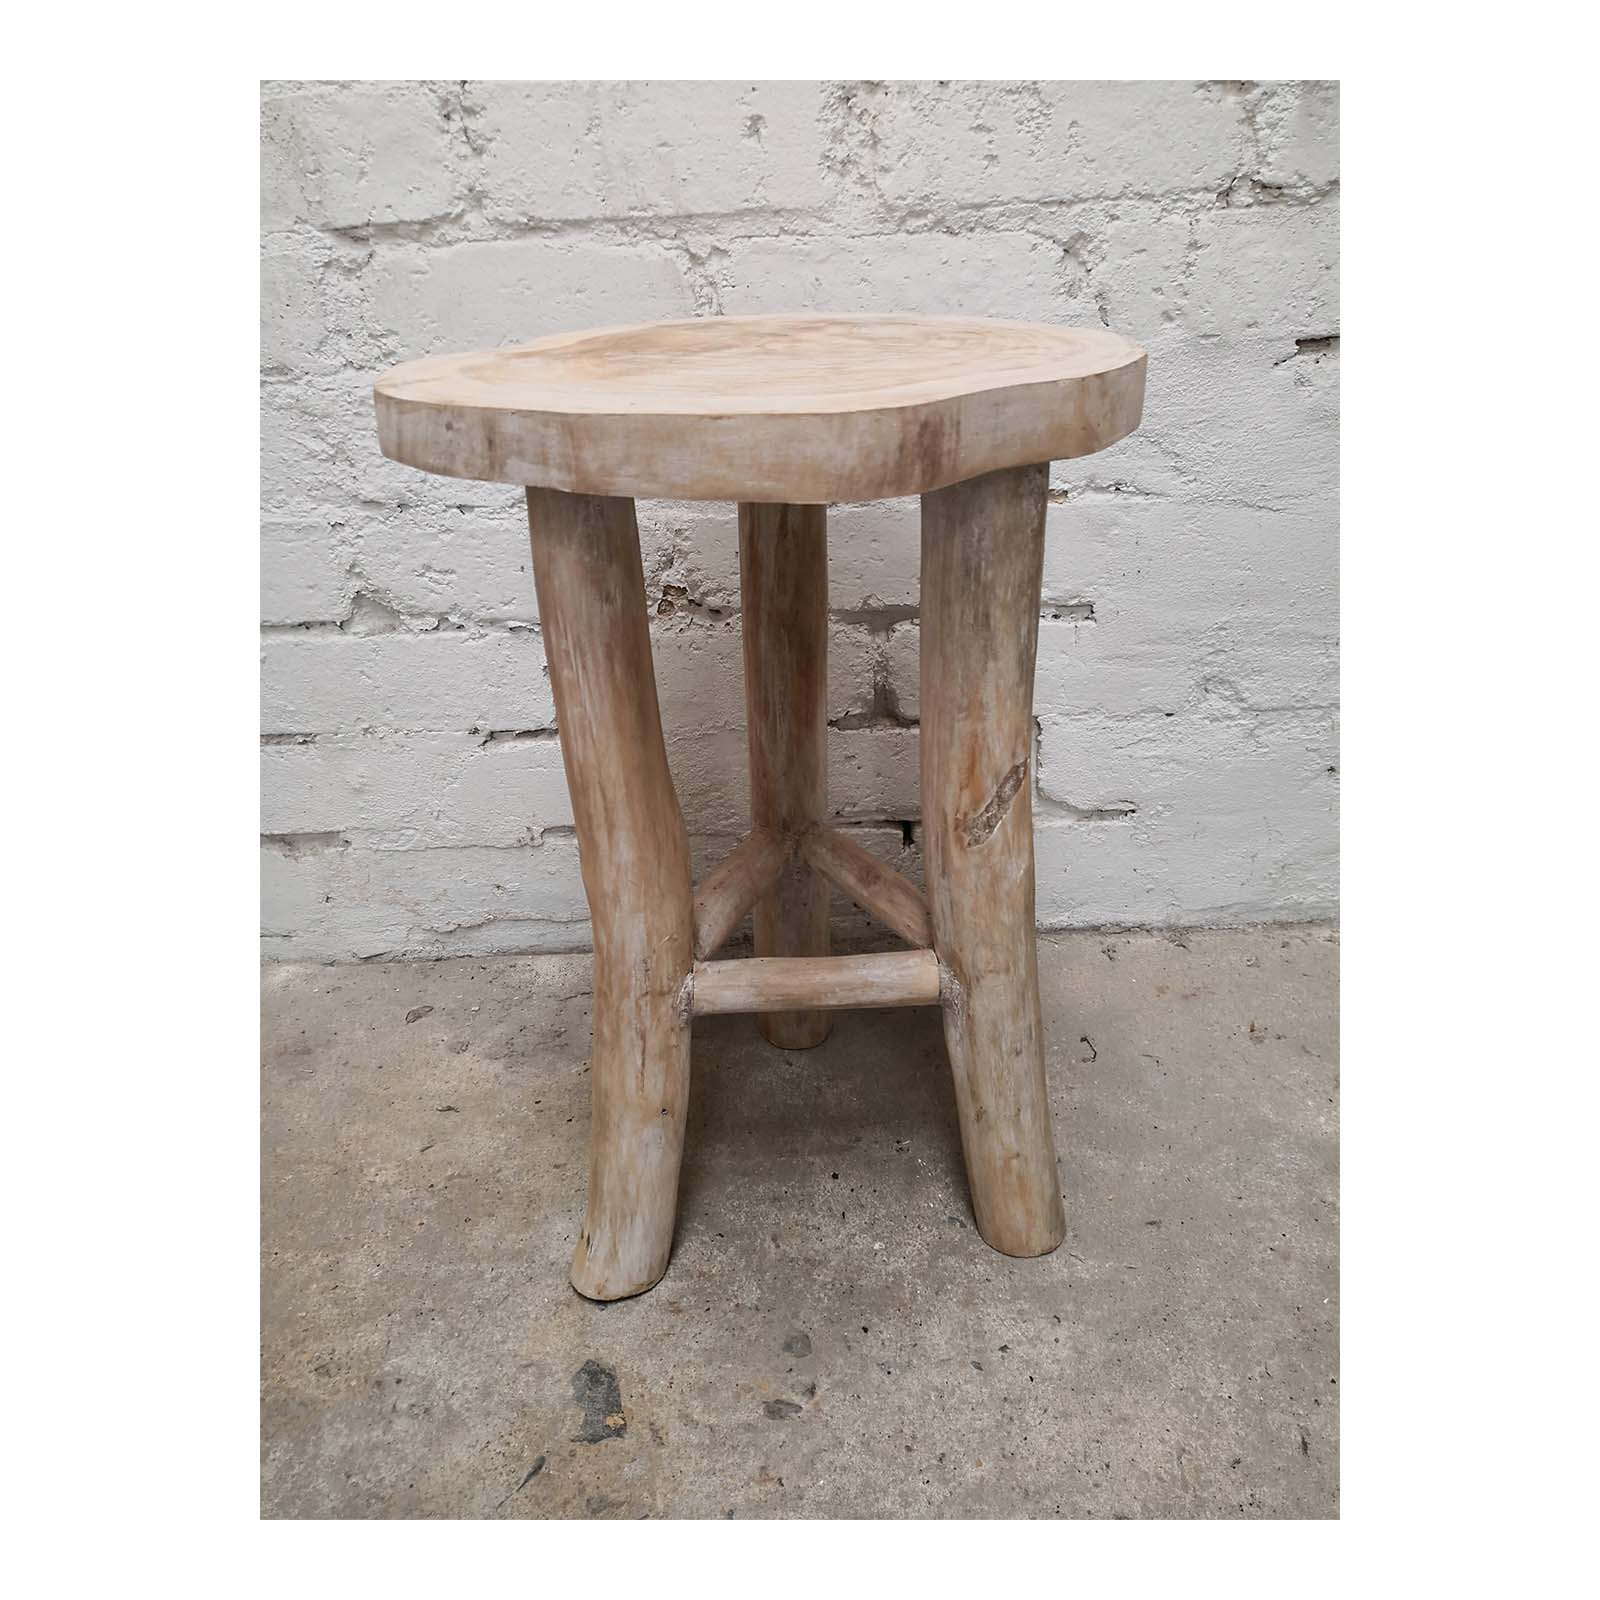 Two Design Lovers white oiled live edge side table side